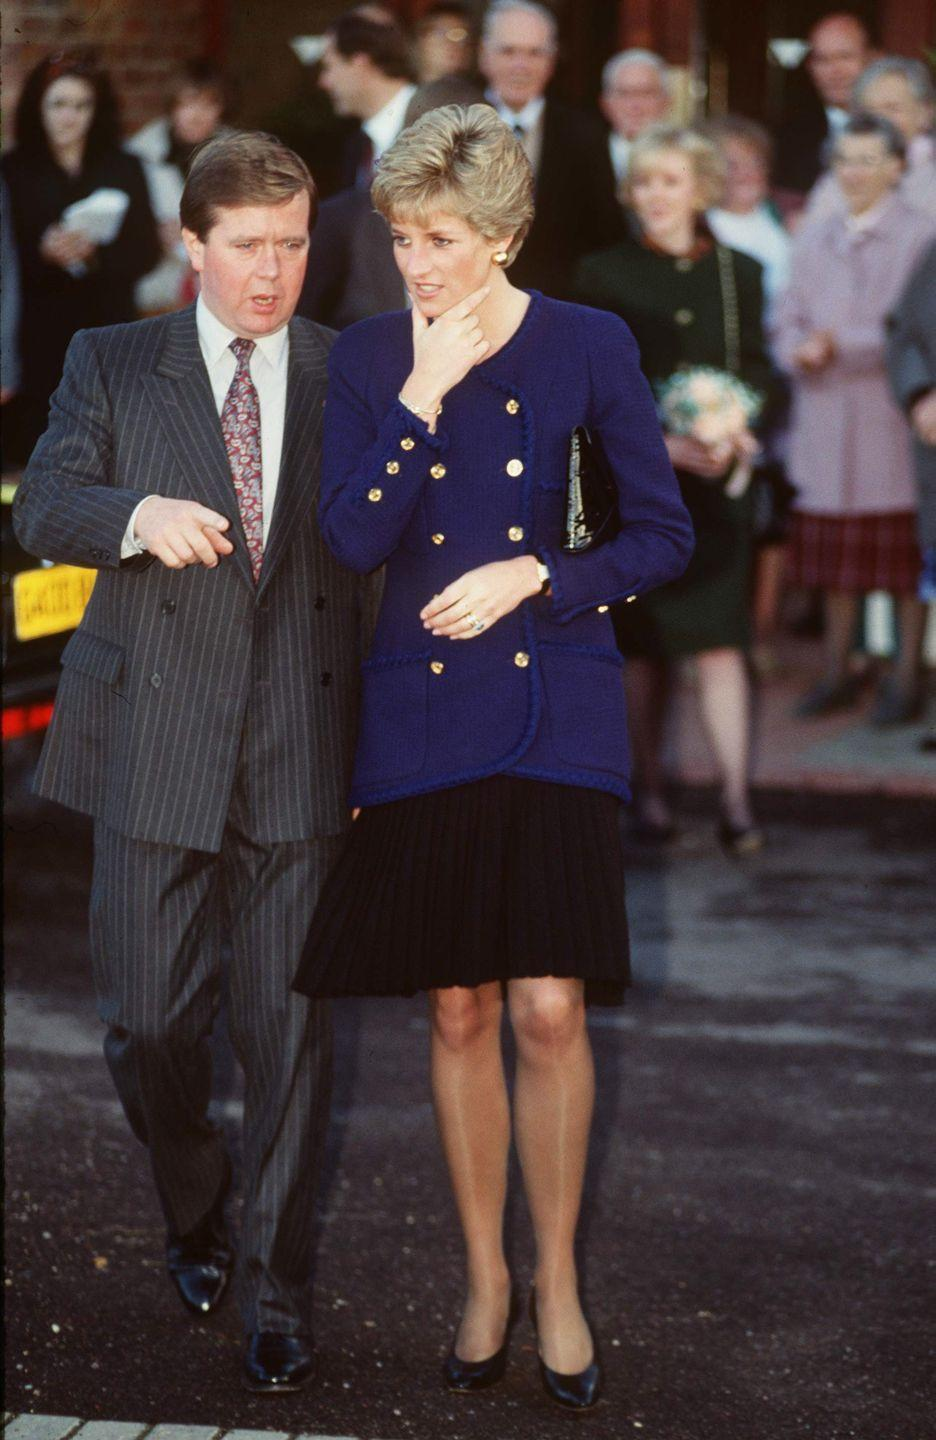 <p>Pairing navy and black is an undeniably timeless combination. Diana wore this navy blazer with gold buttons over a sleek black dress during an outing in Oxford in November 1990.<br></p>